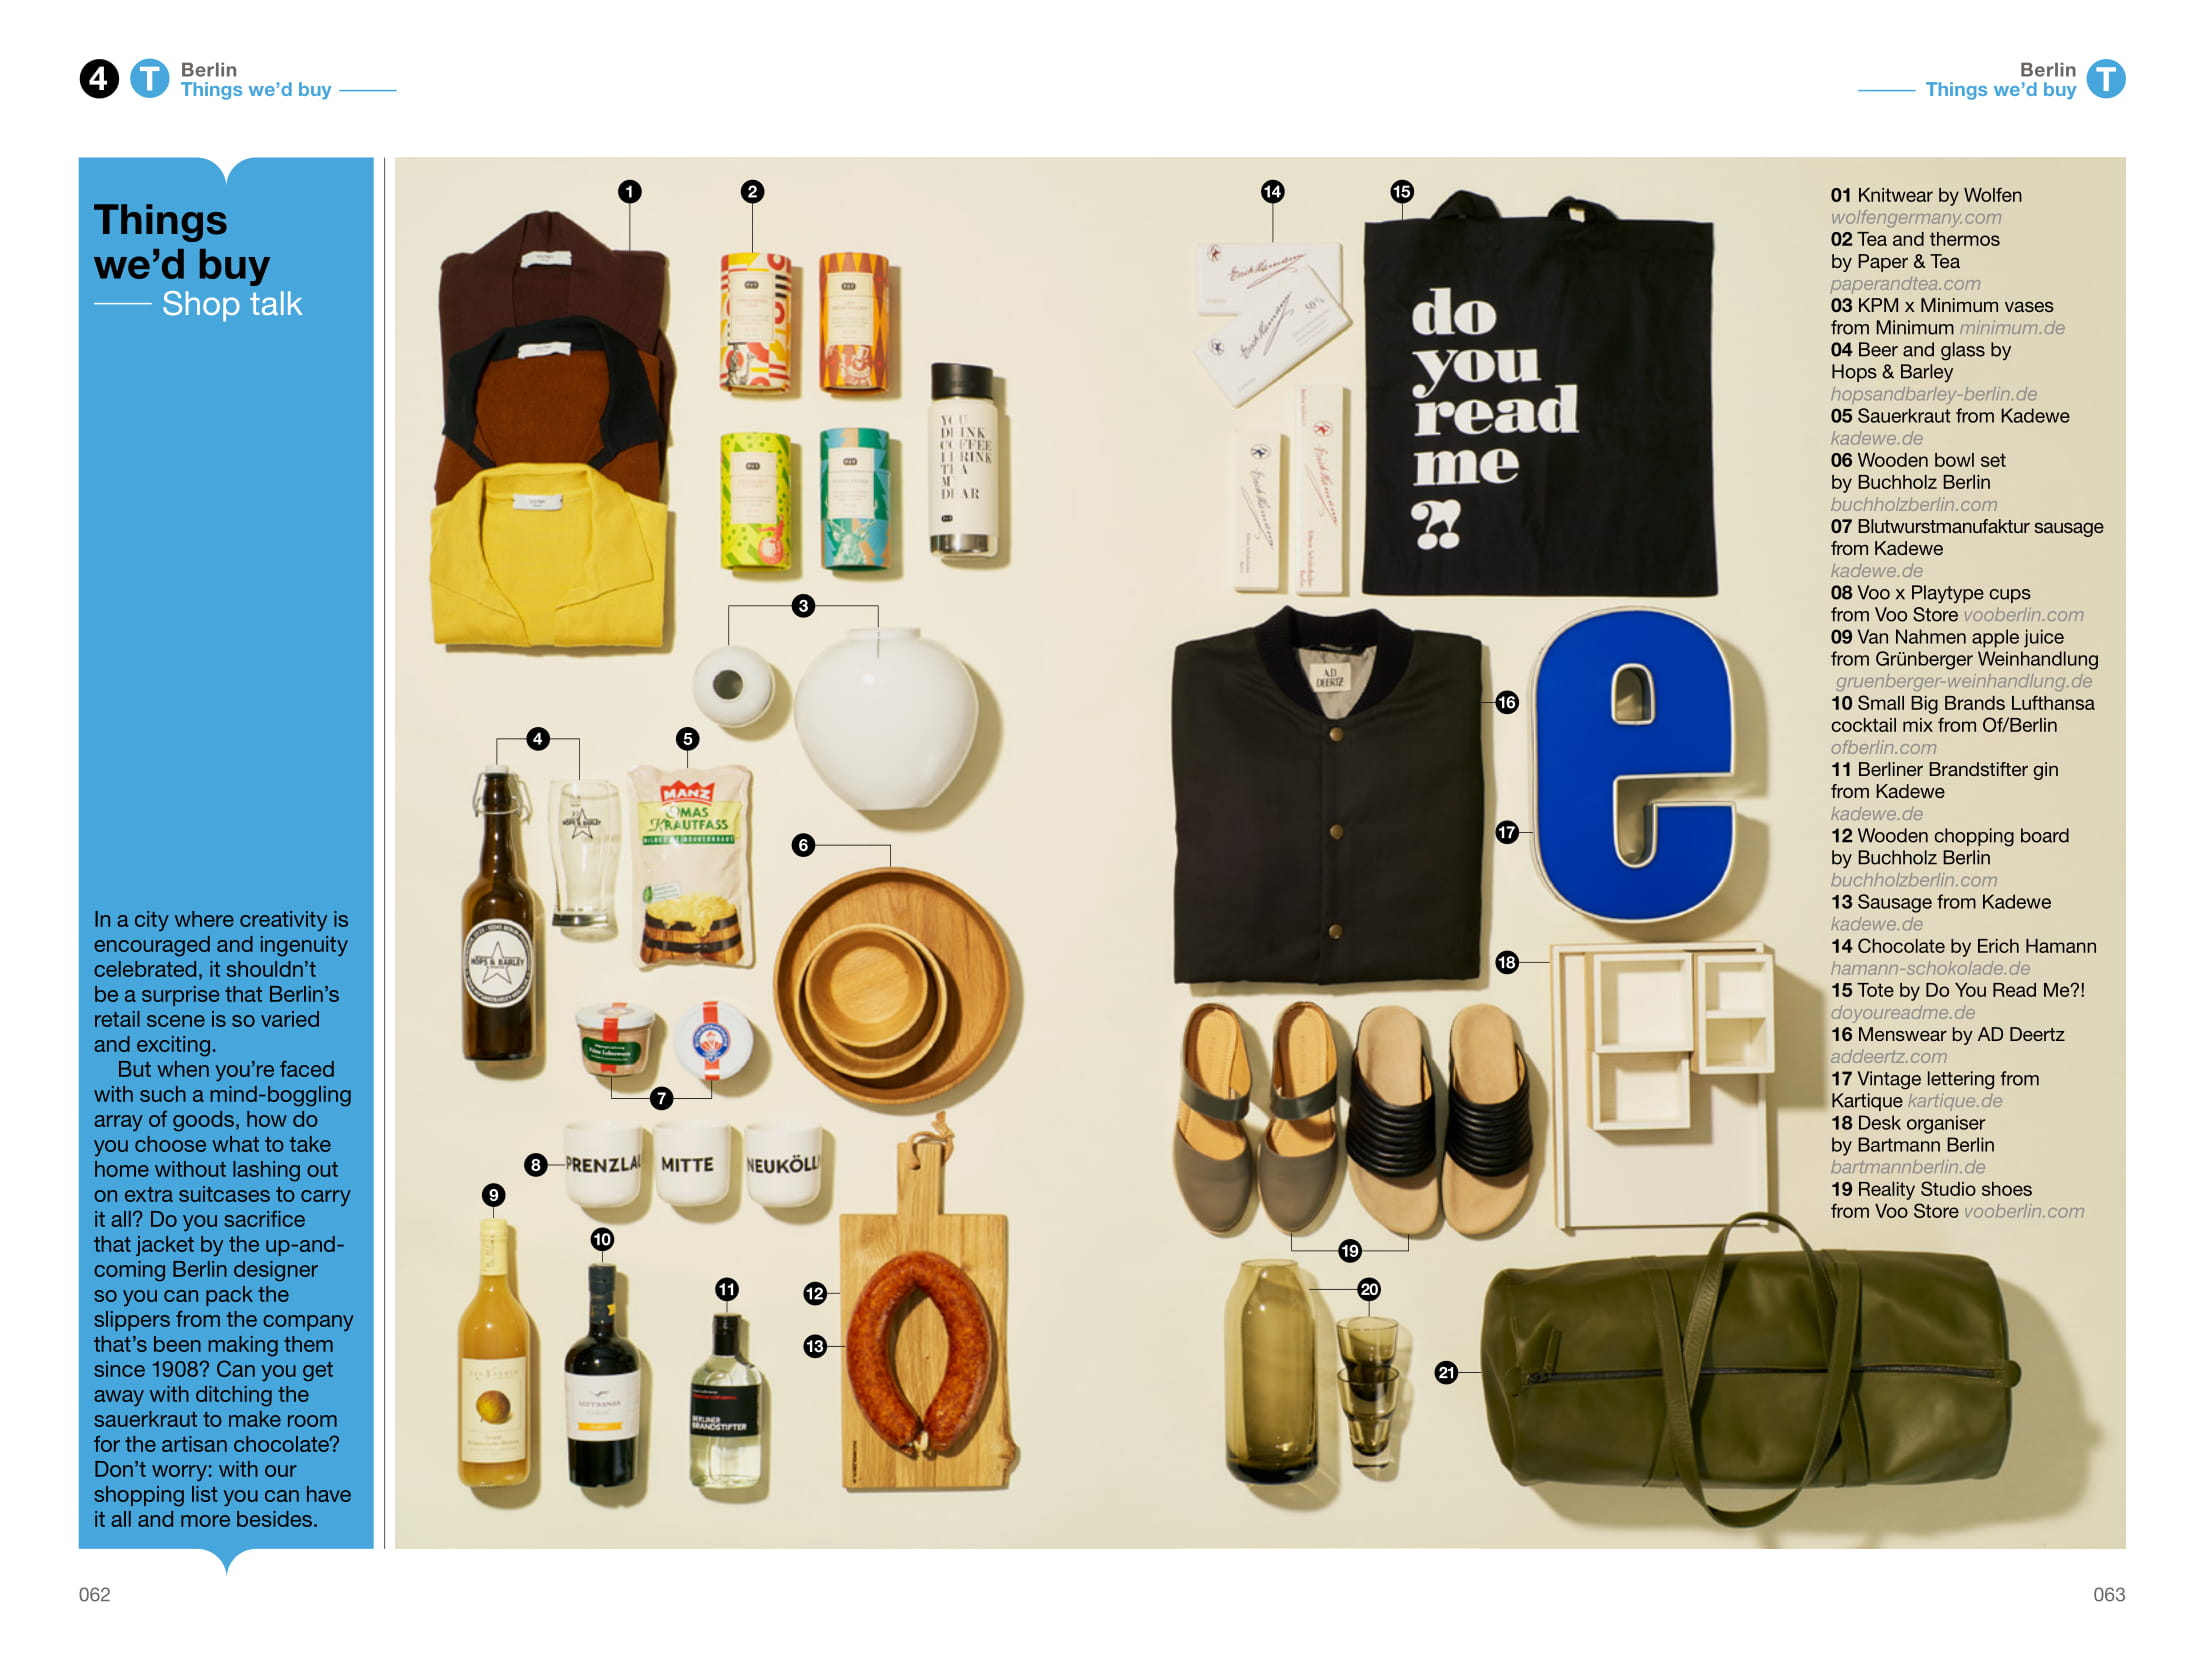 By Tyler Brule, Andrew Tuck, Joe Pickard from Berlin: the Monocle Travel Guide Series copyright Gestalten 2017